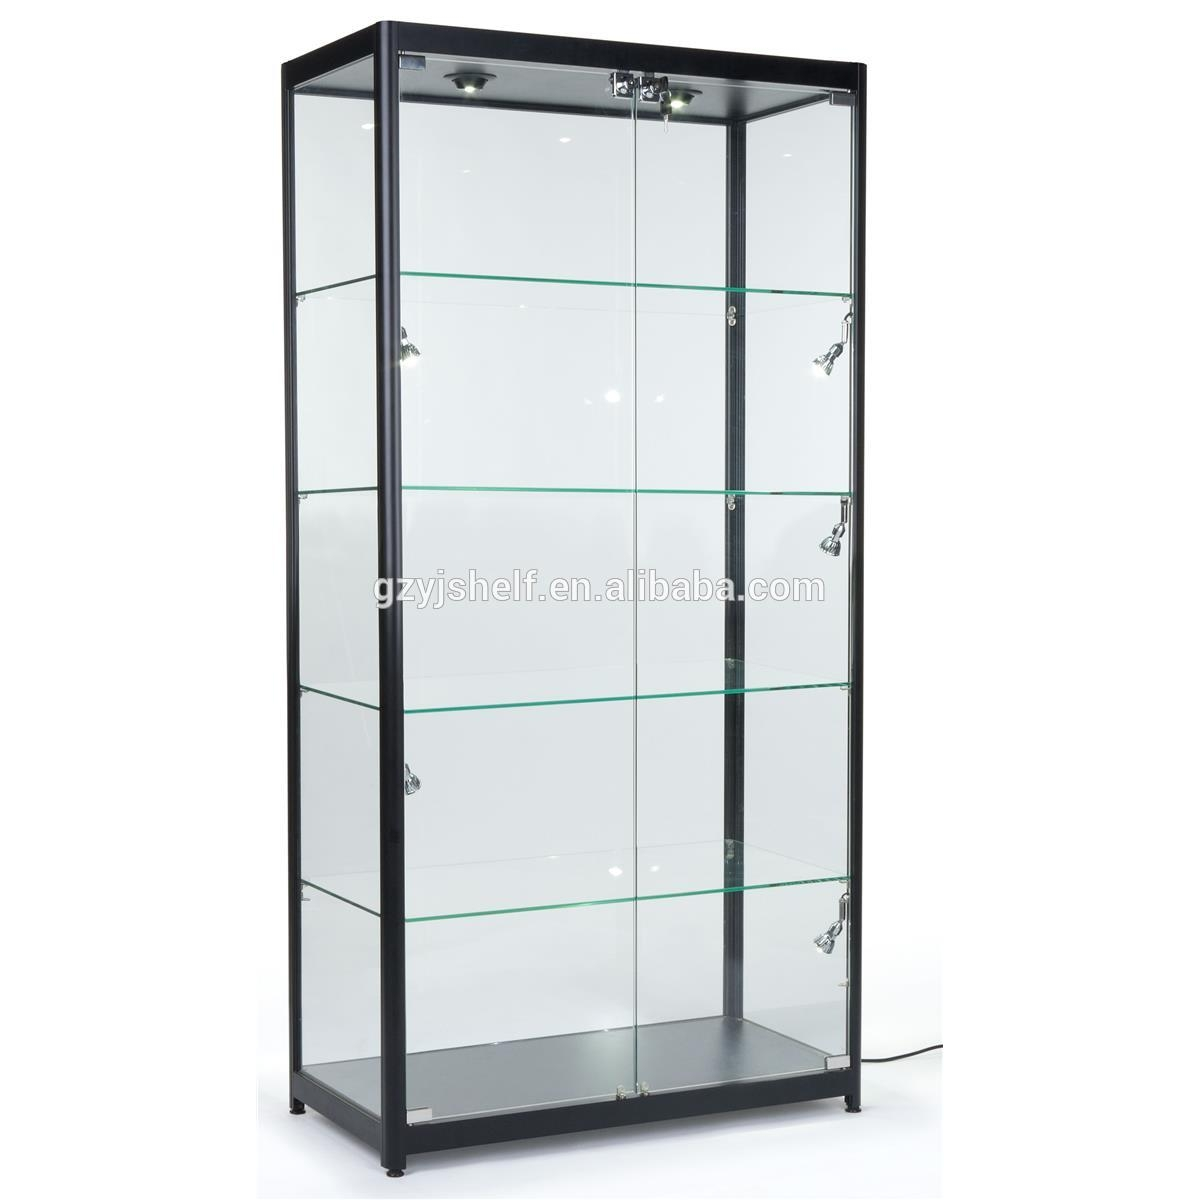 Attirant Tempered Glass Curio Cabinet With 8 Halogen Lights, 78 X 40 X 16.5 Inch